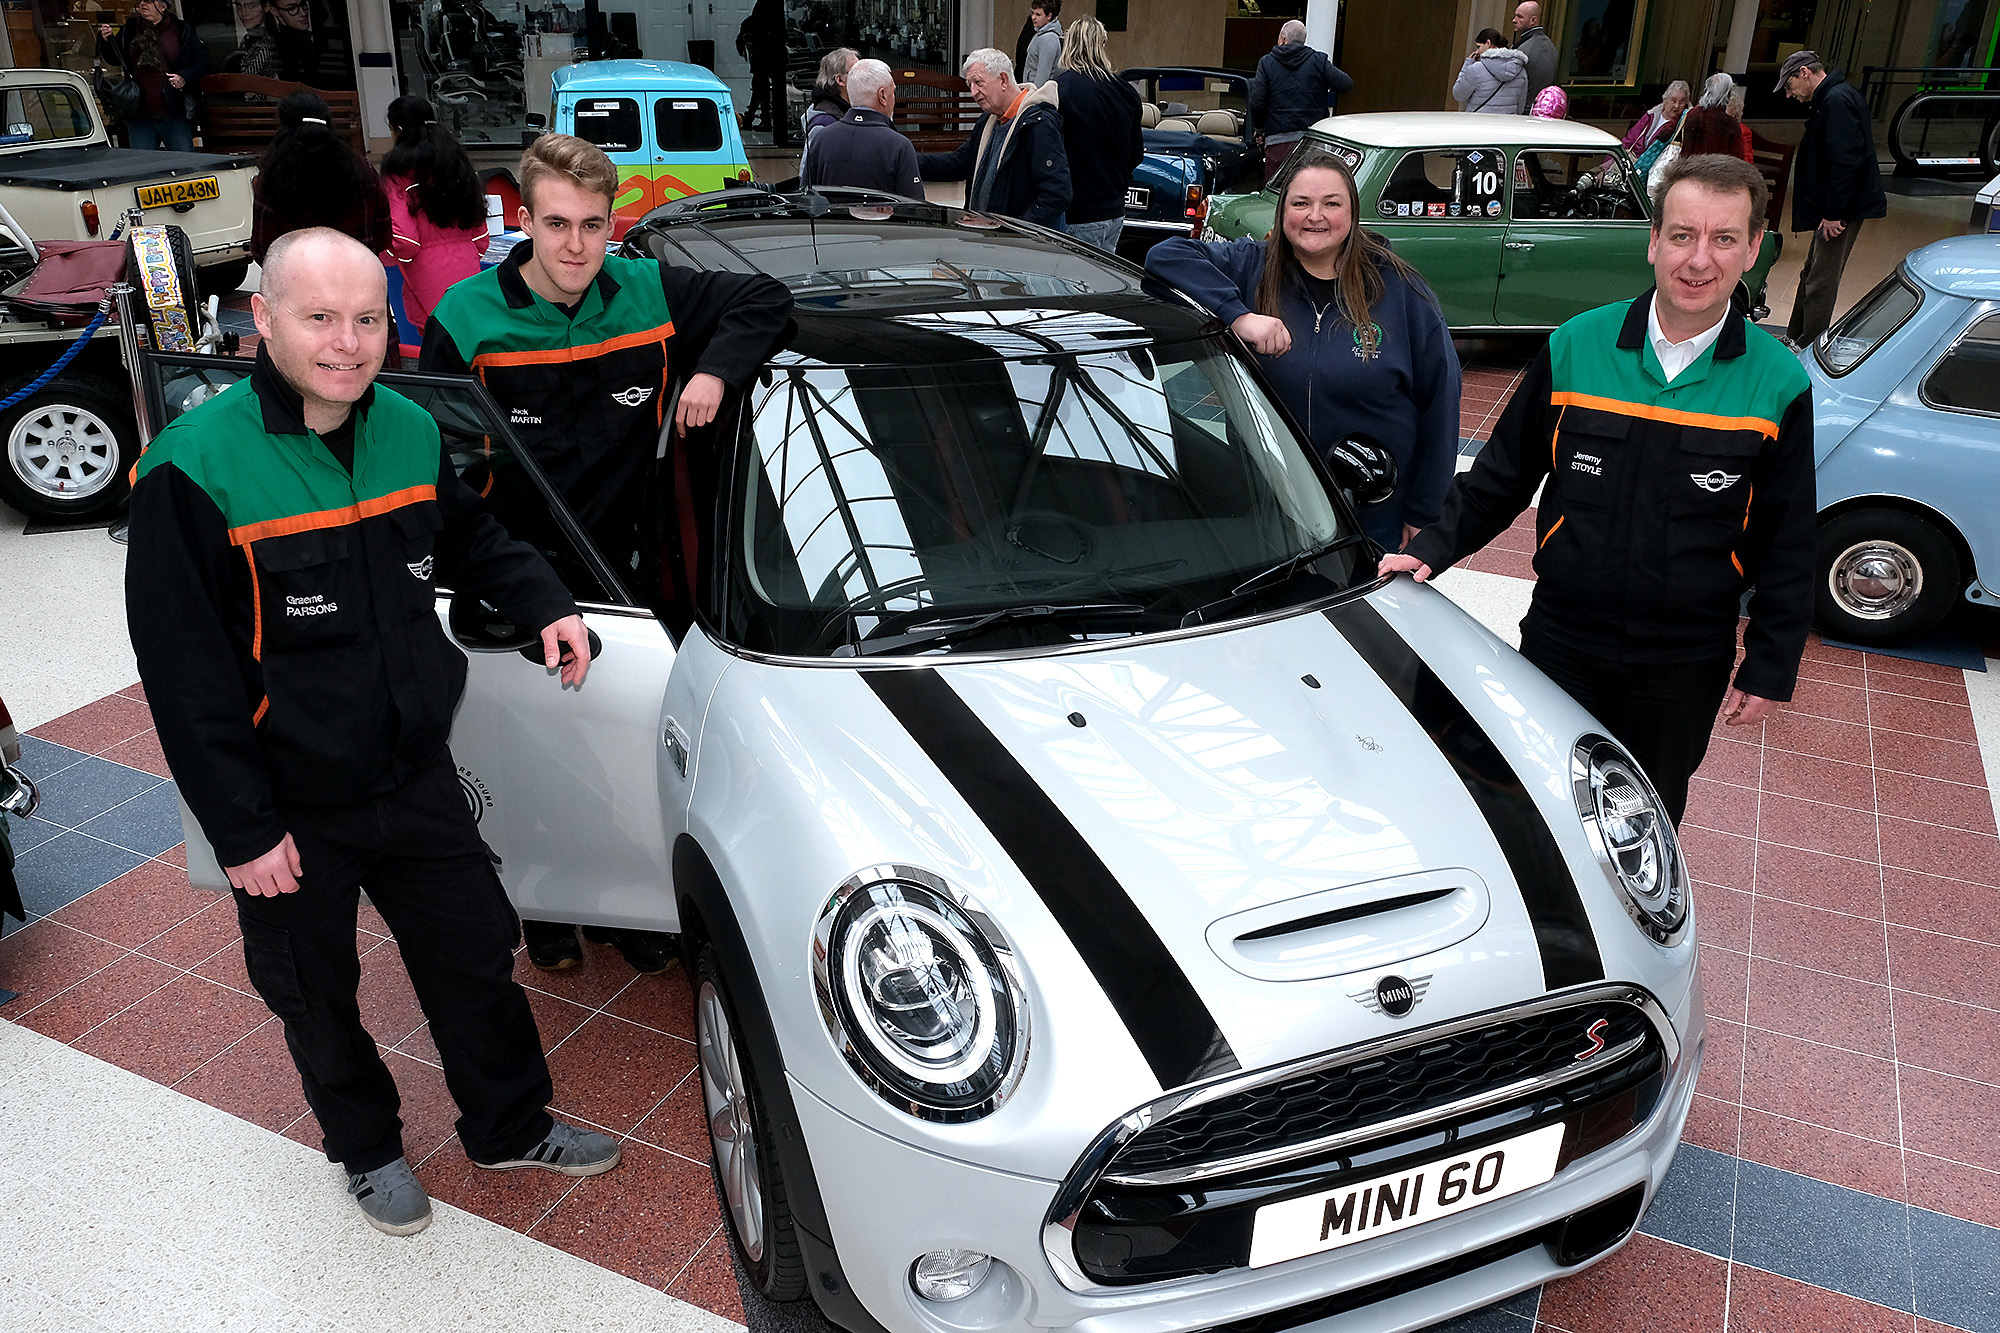 See the new electric Mini at Oxford shopping centre